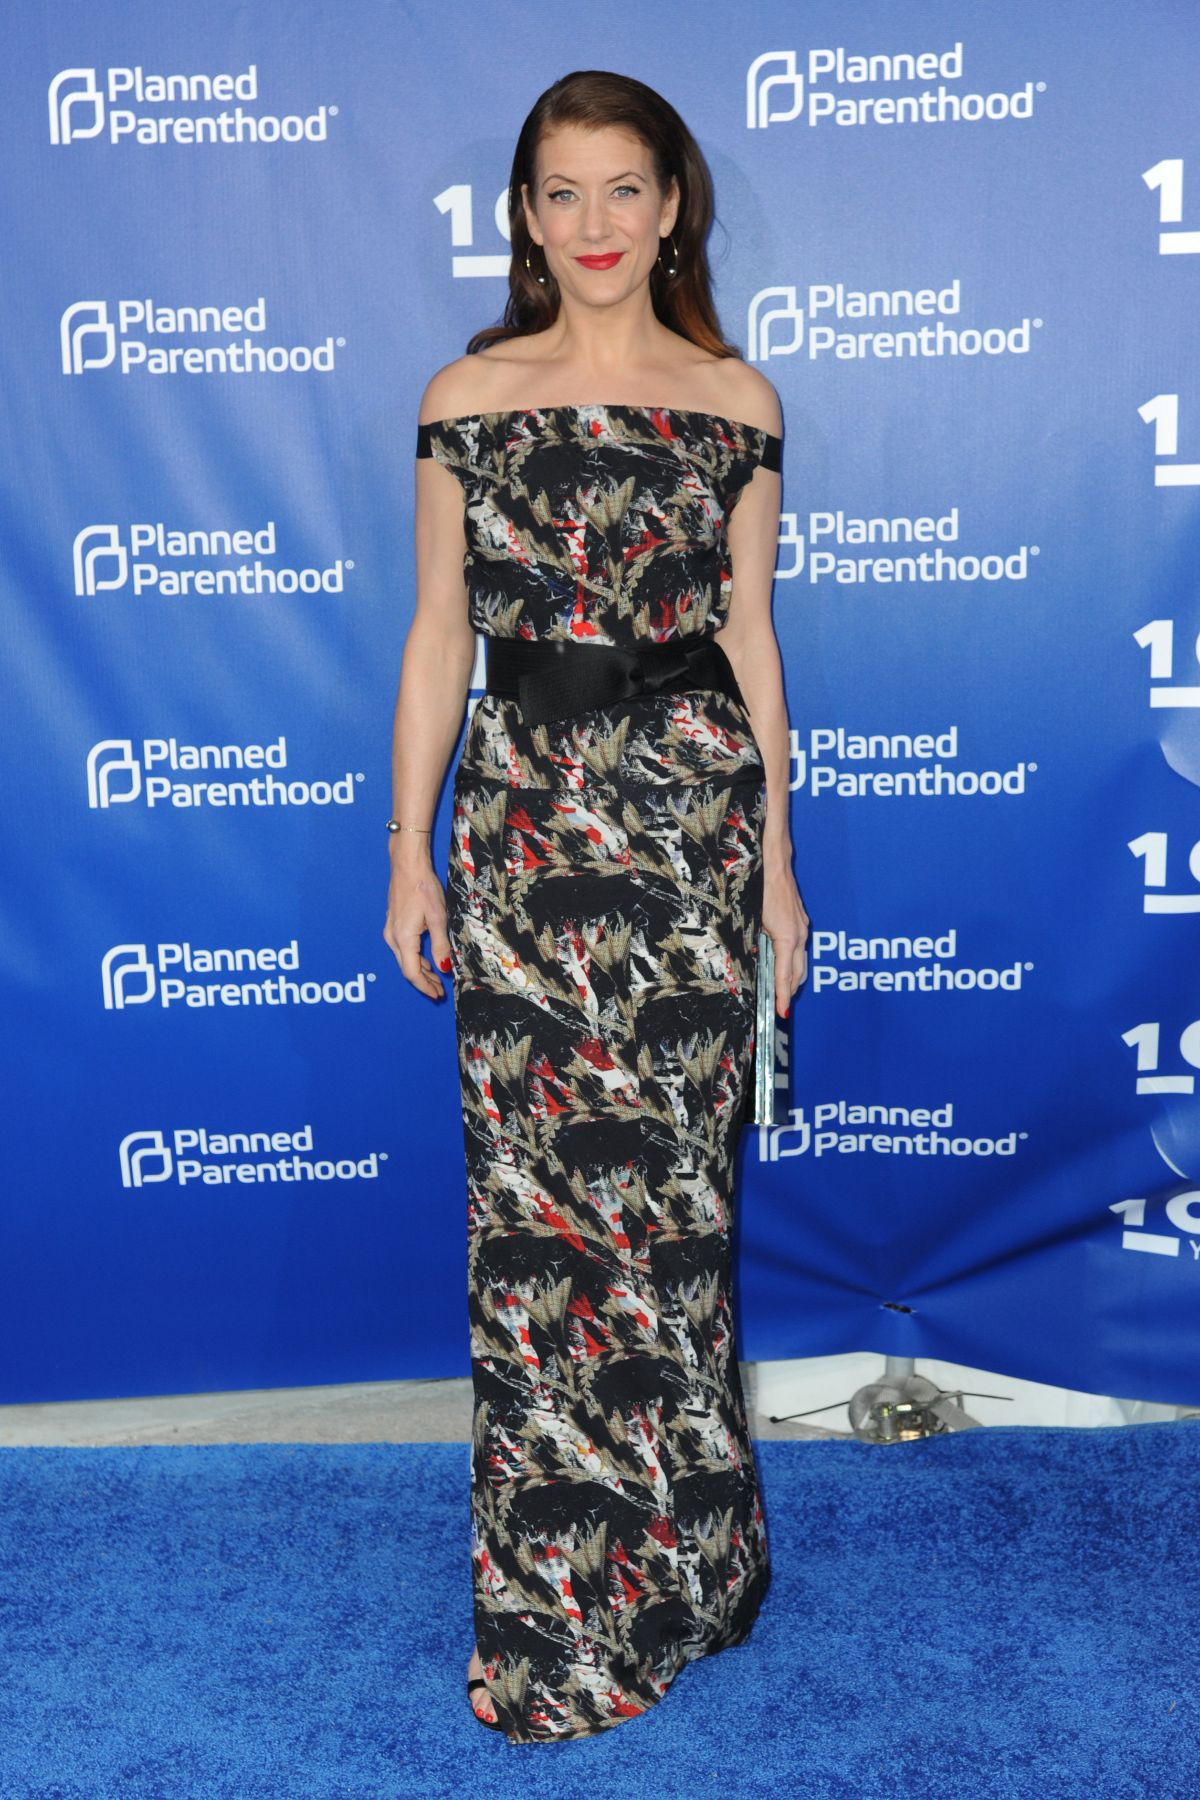 KATE WALSH at Planned Parenthood 100th Anniversary Gala 05/02/2017